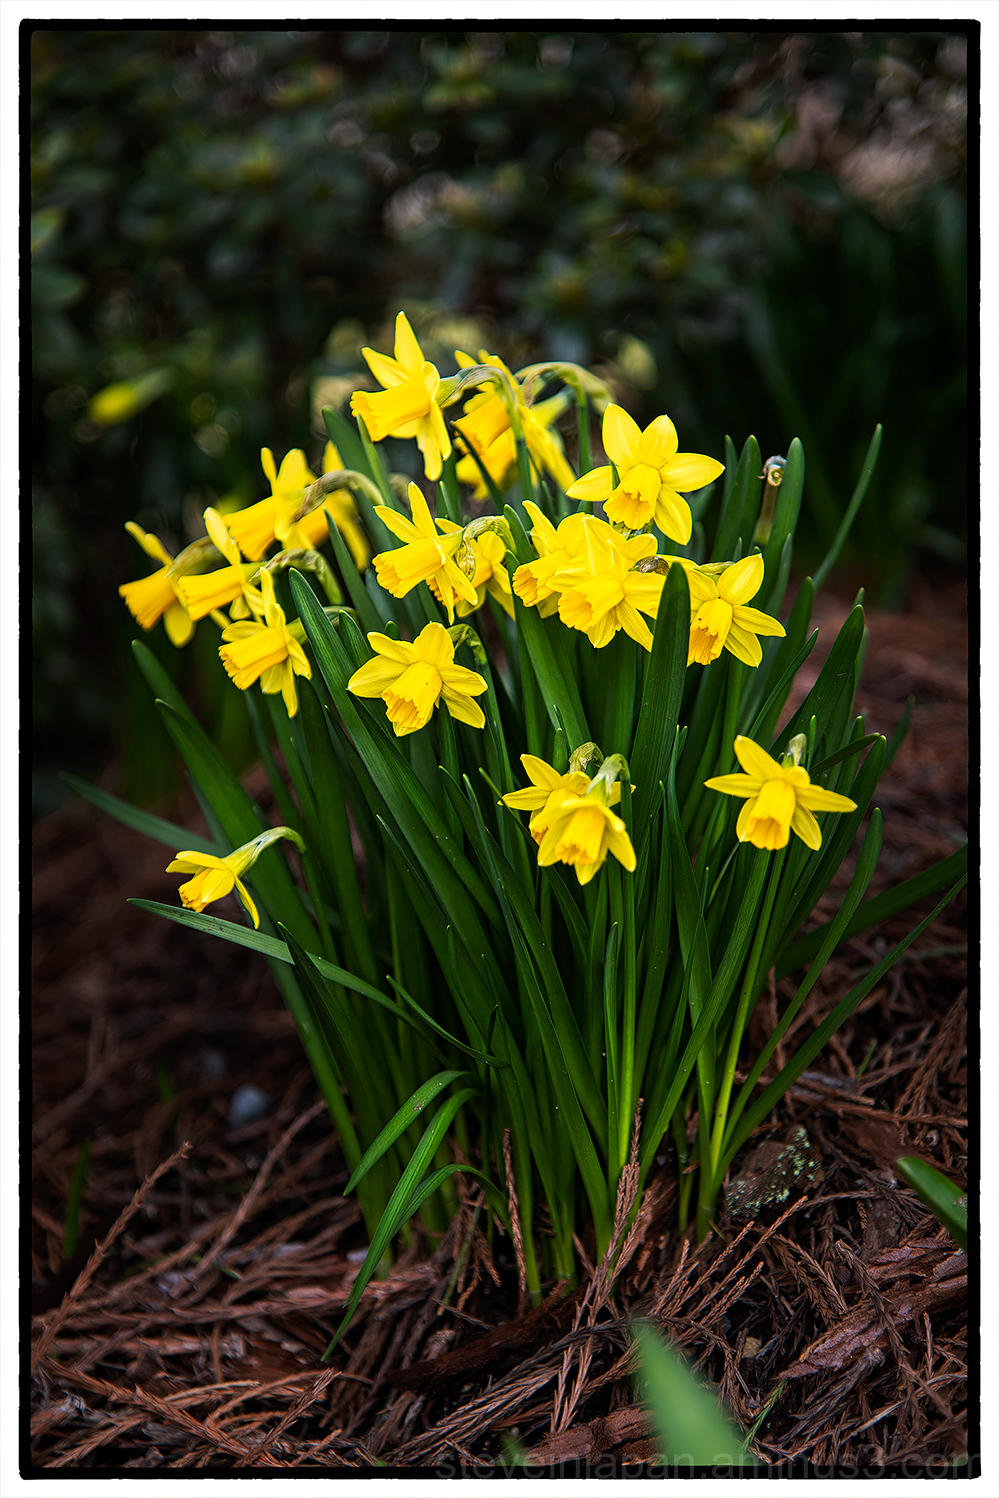 Dwarf Daffodils under a tree.